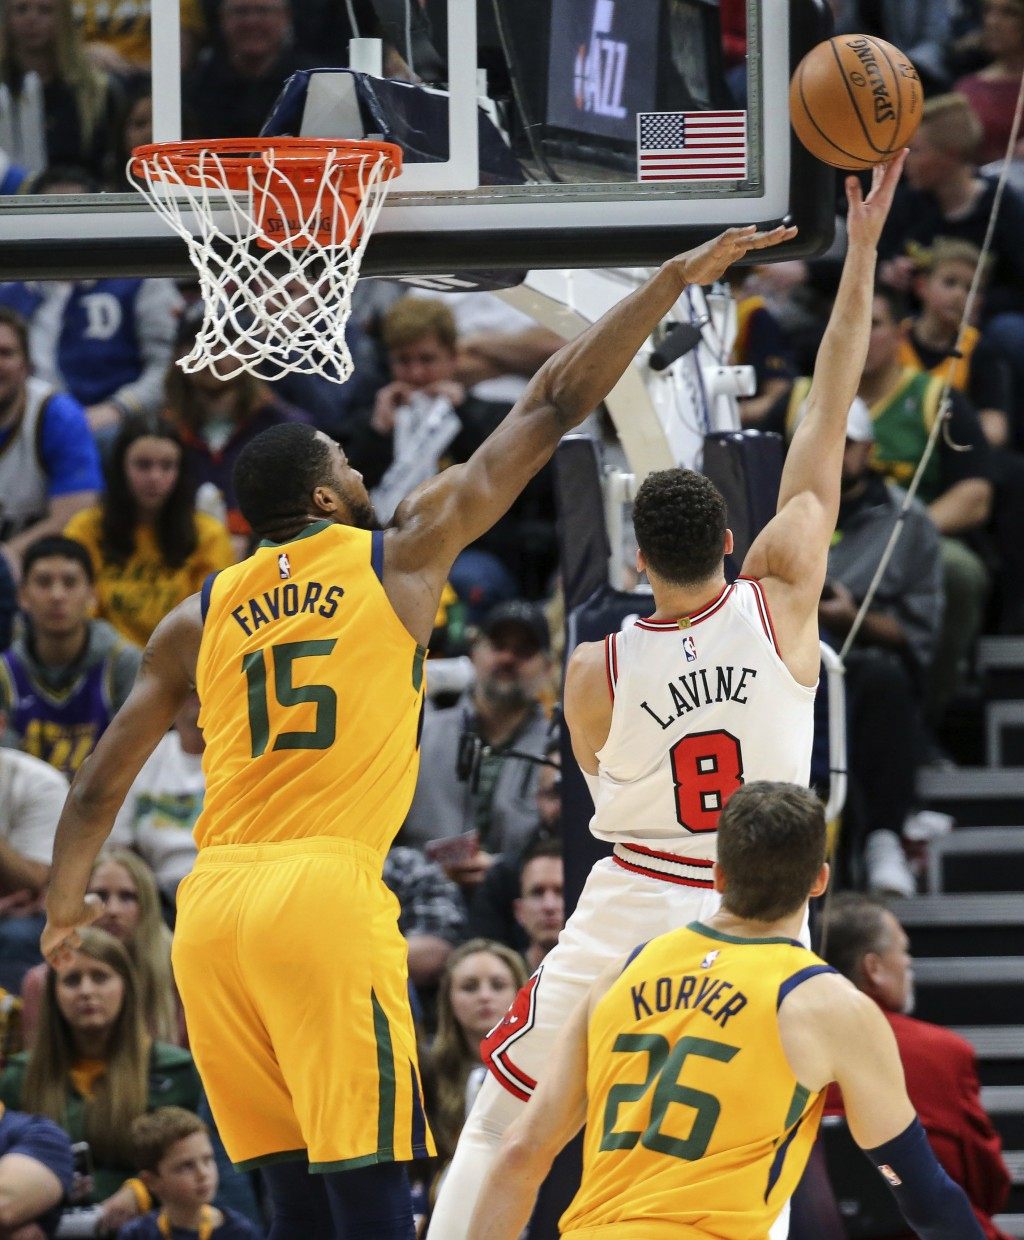 Utah Jazz forward Derrick Favors (15) tries to block the shot of Chicago Bulls guard Zach LaVine (8) during the second quarter of an NBA basketball ga...